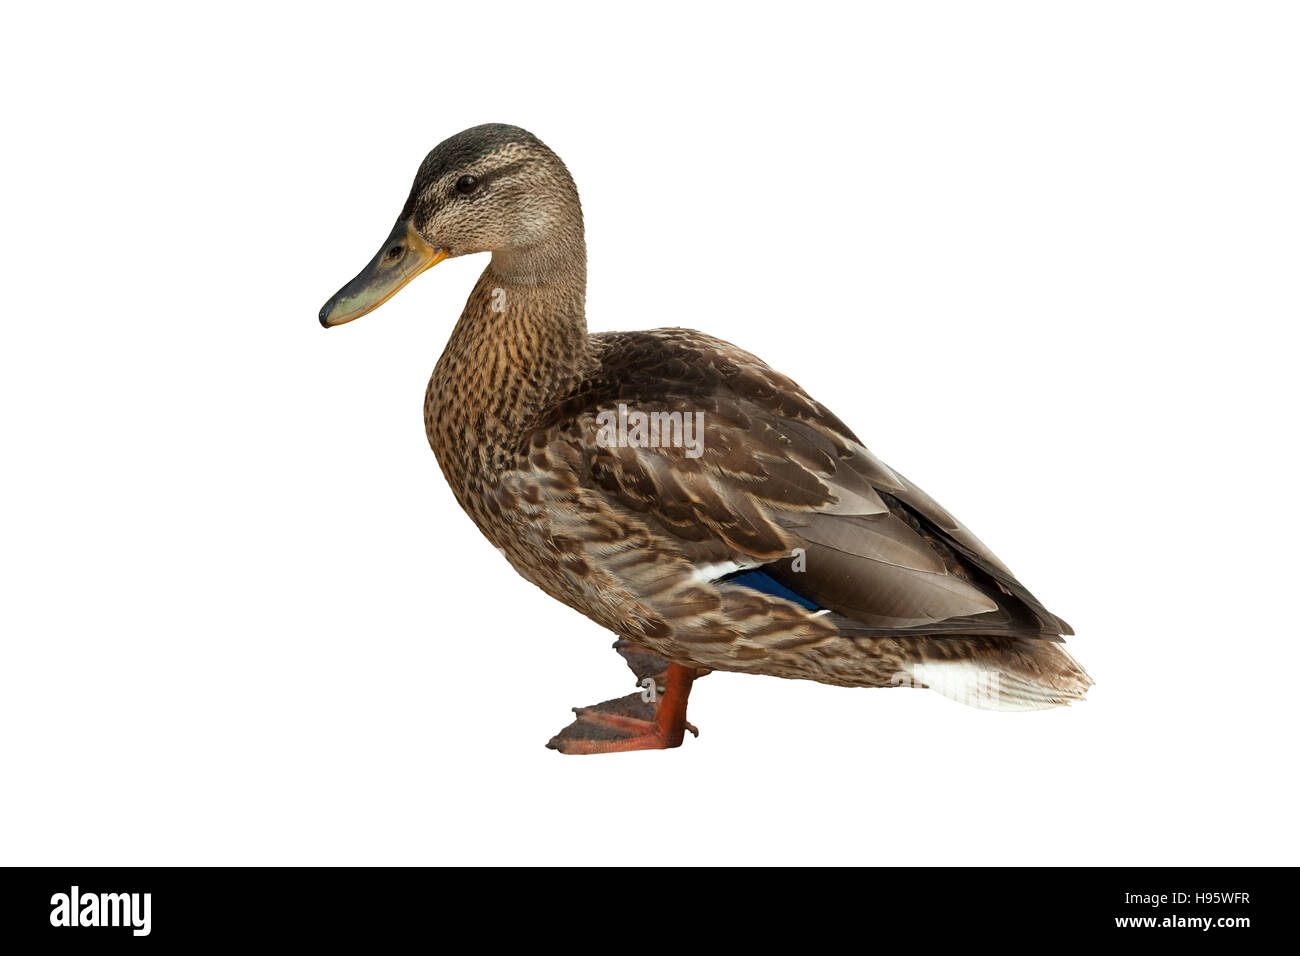 wild duck (Anas platyrhynchos) on white background - Stock Image